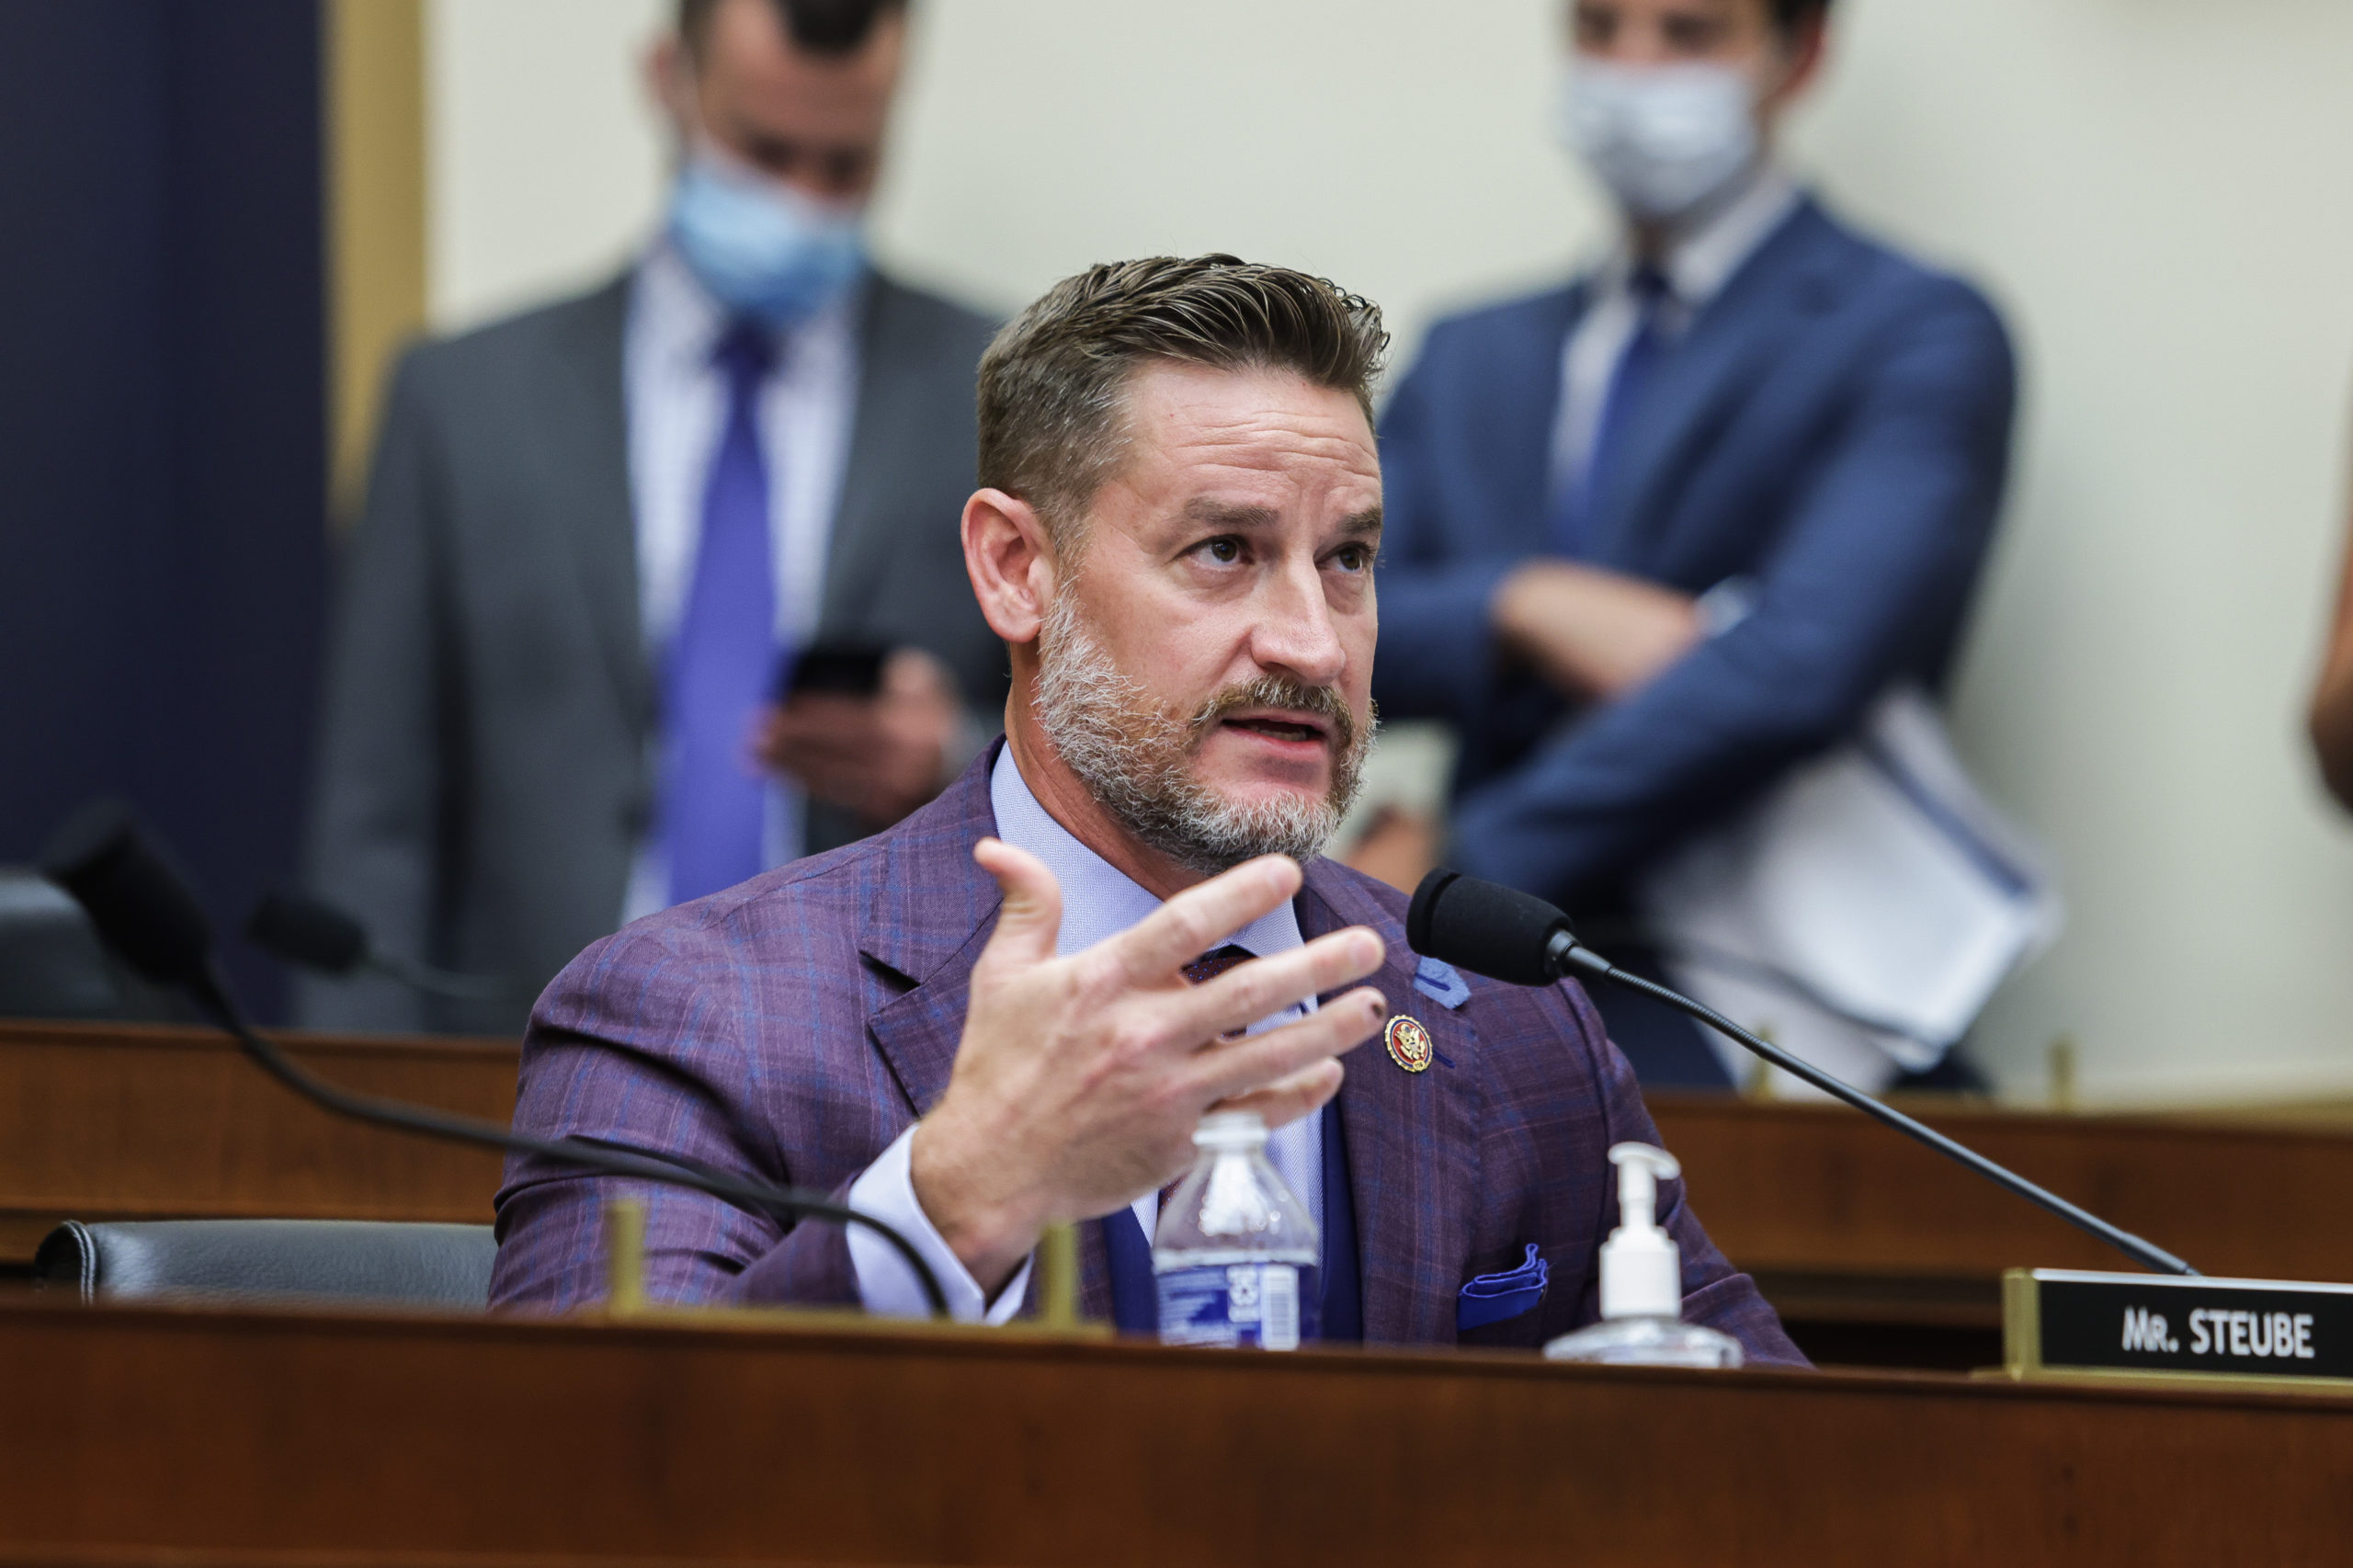 WASHINGTON, DC - JULY 29: Rep. Greg Steube (R-FL) speaks during the House Judiciary Subcommittee on Antitrust, Commercial and Administrative Law hearing on Online Platforms and Market Power in the Rayburn House office Building, July 29, 2020 on Capitol Hill in Washington, DC. The committee was scheduled to hear testimony from the CEOs of Apple, Facebook, Amazon and Google. (Photo by Graeme Jennings-Pool/Getty Images)